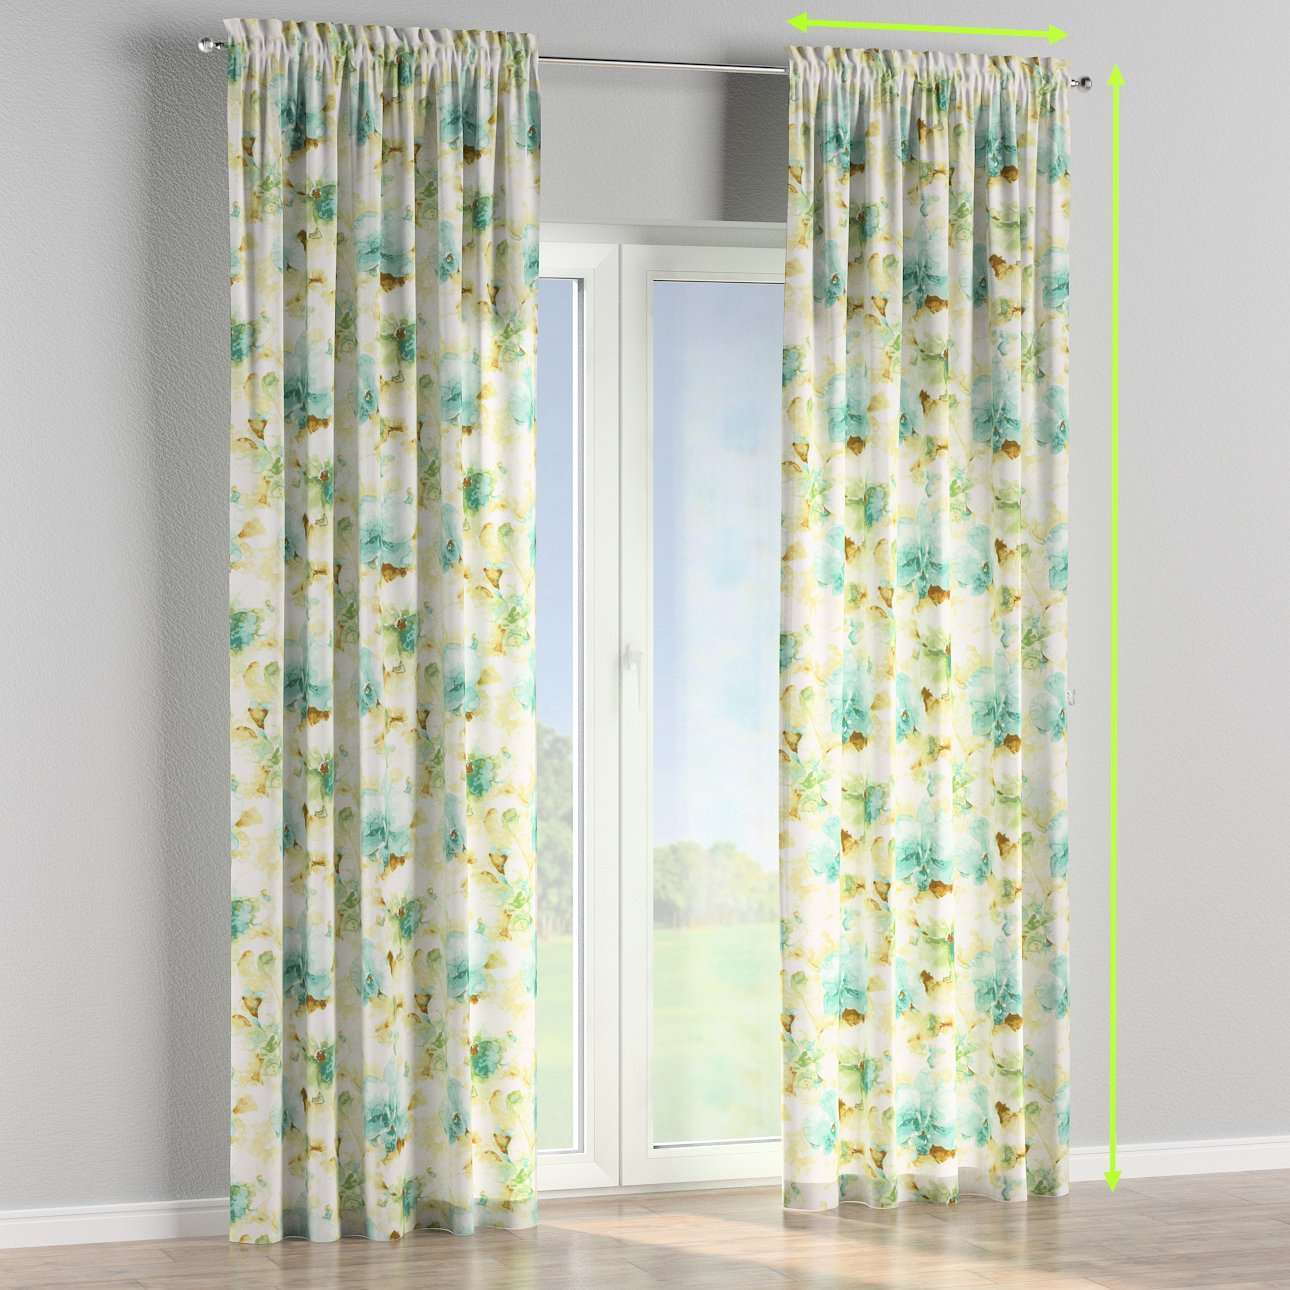 Slot and frill lined curtains in collection Acapulco, fabric: 141-35